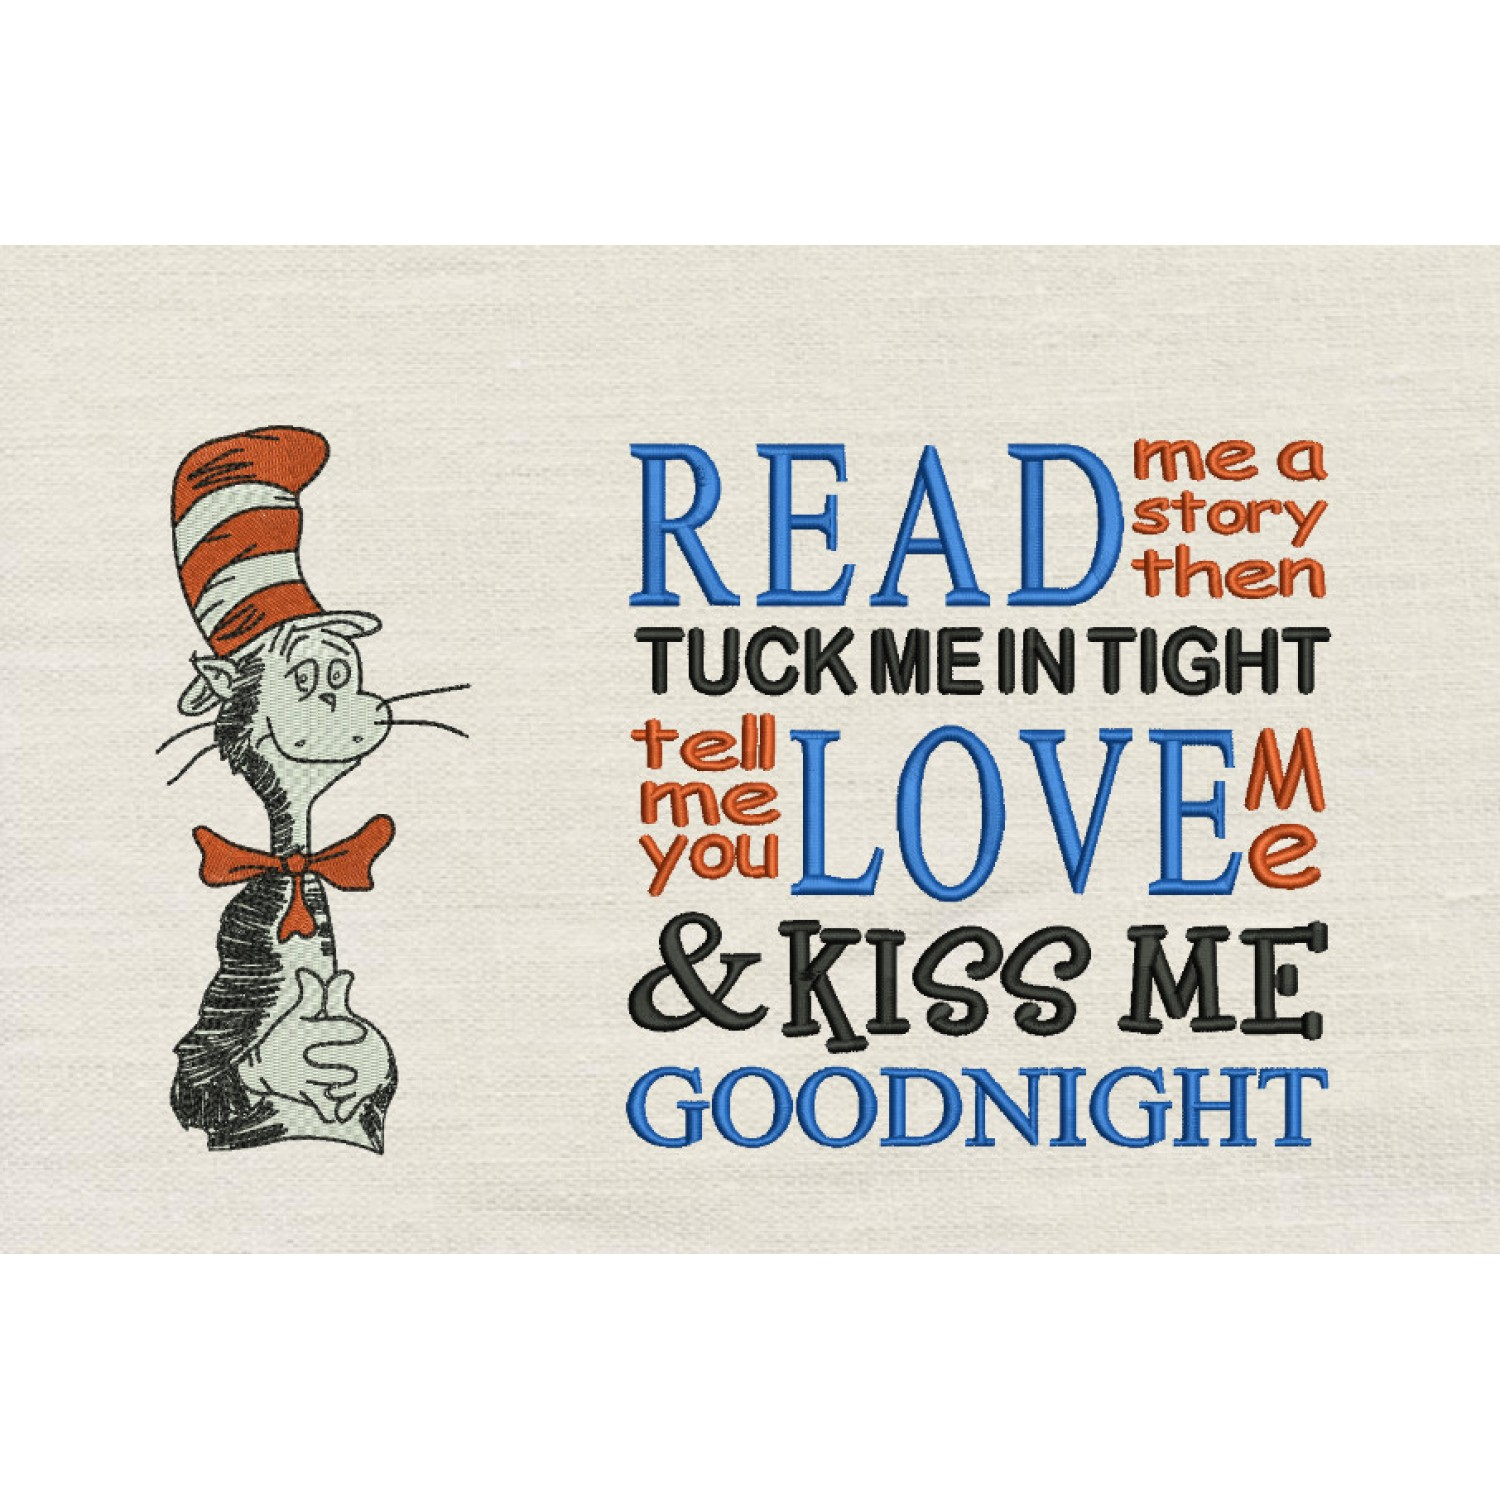 Dr. Seuss stitches with Read me a story